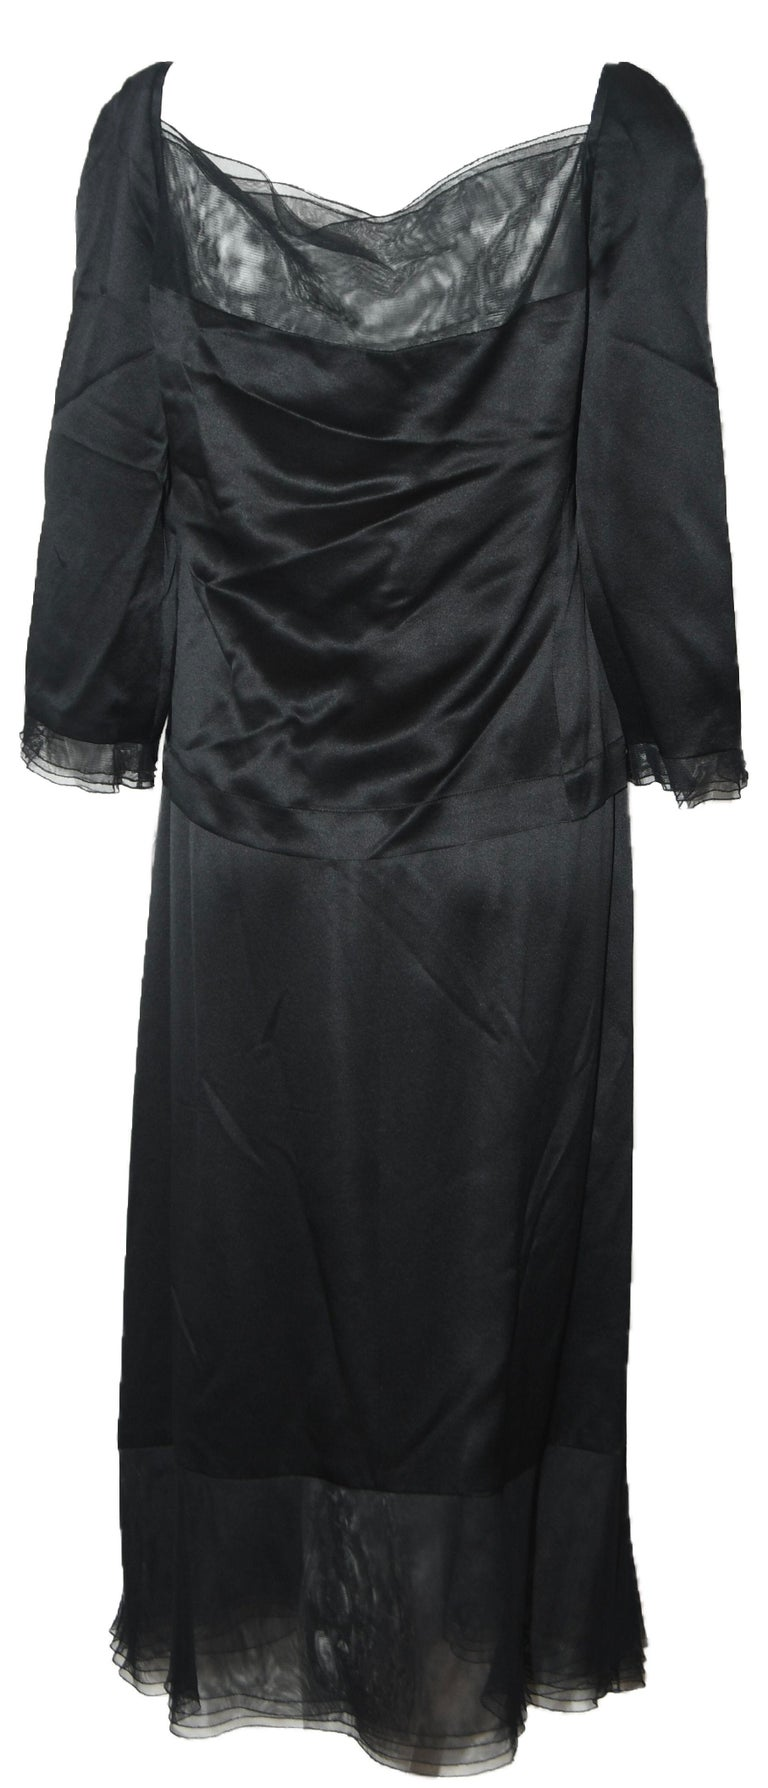 Chanel Black Silk 2 Piece Long Sleeve Top & Long Skirt Dress In Excellent Condition For Sale In Palm Beach, FL